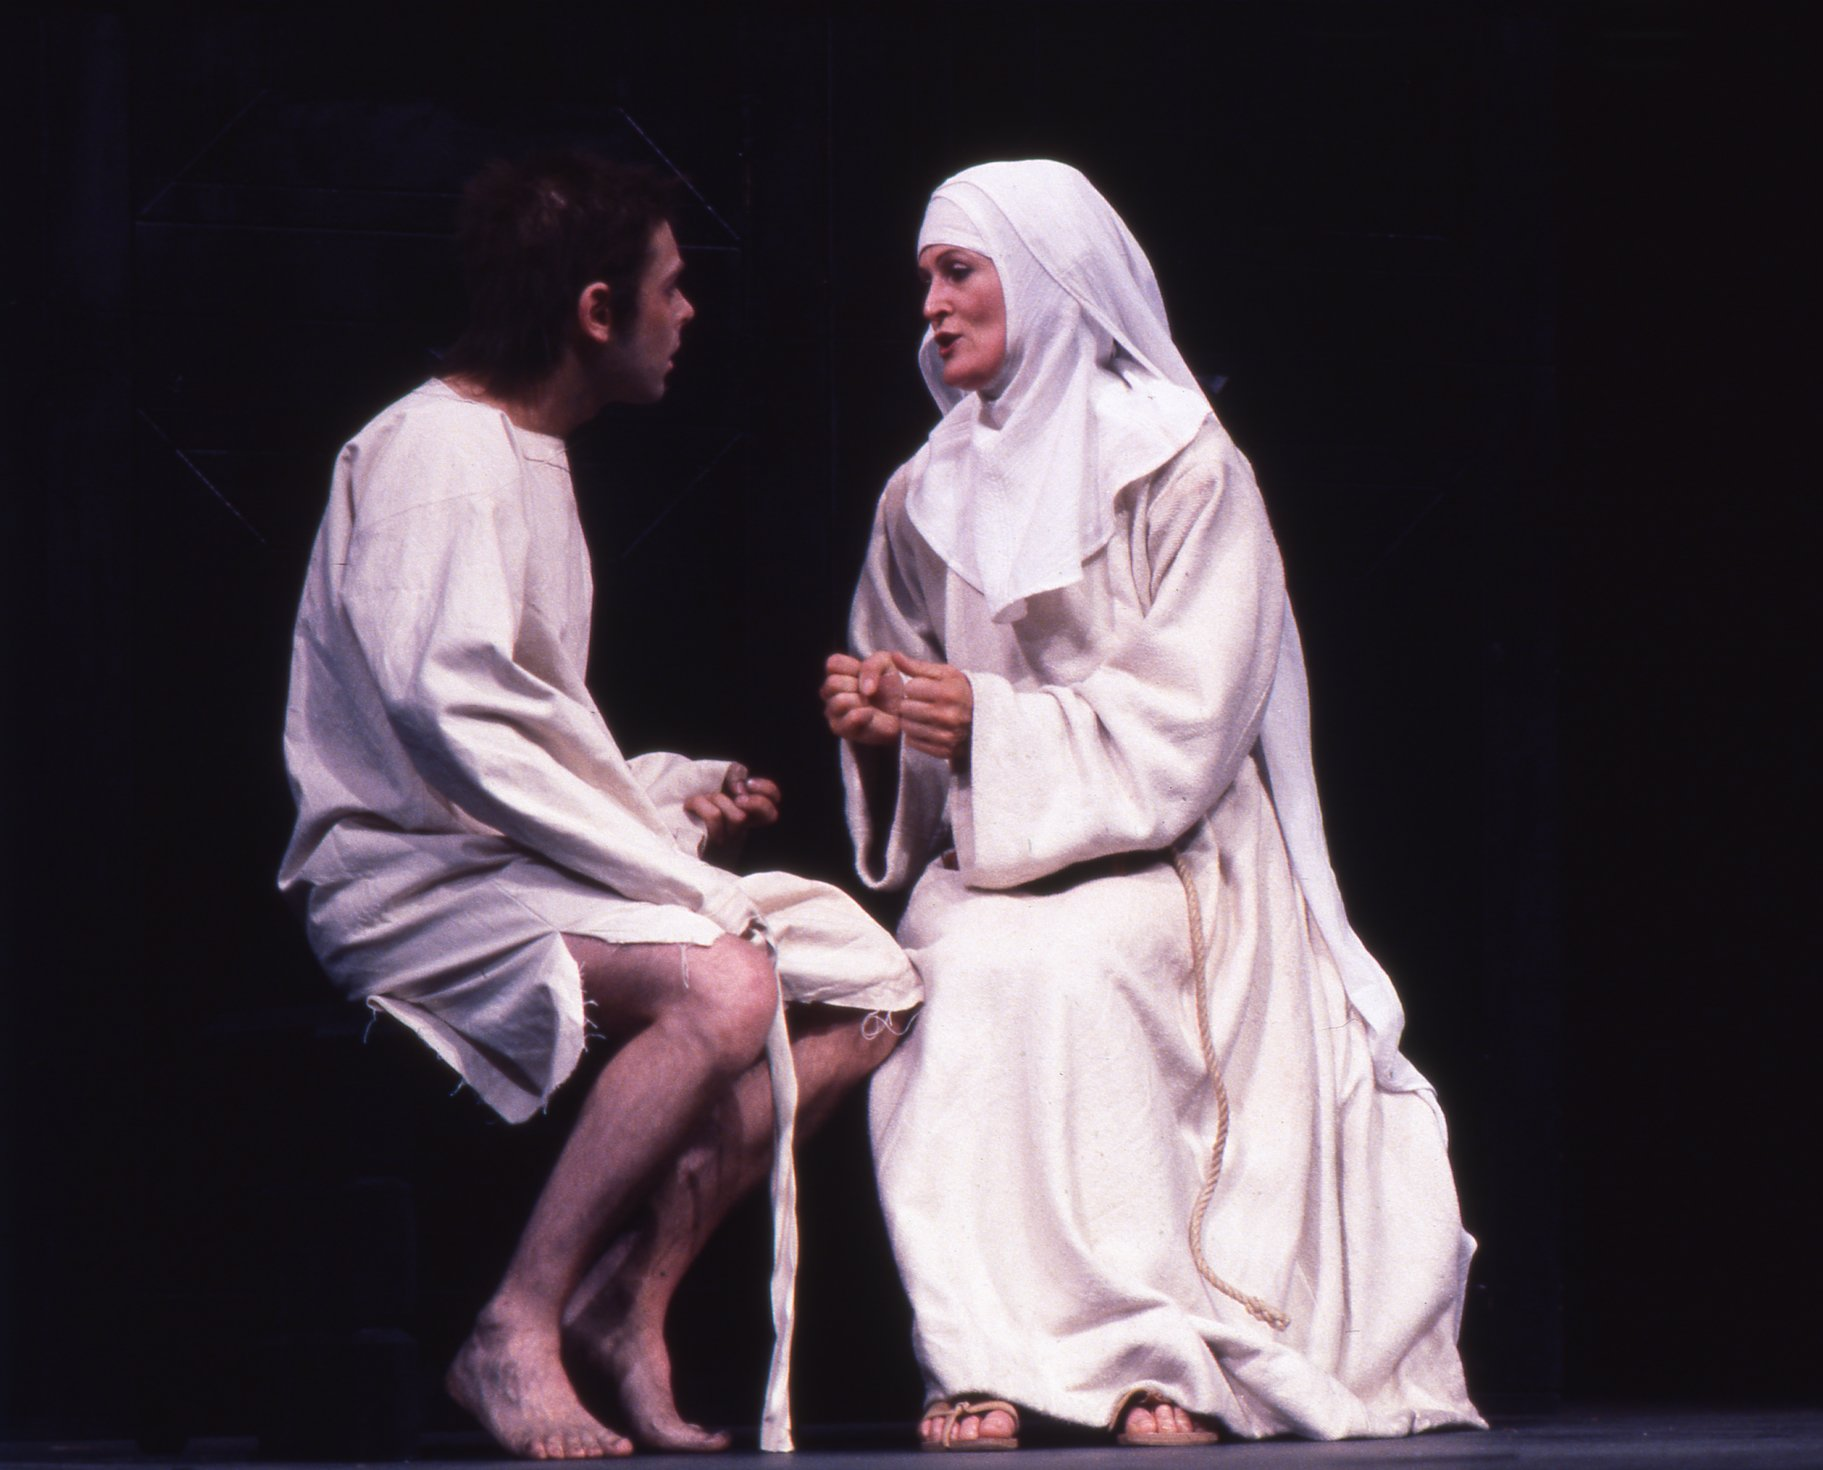 A nun talks to a prisoner in ragged white clothes.